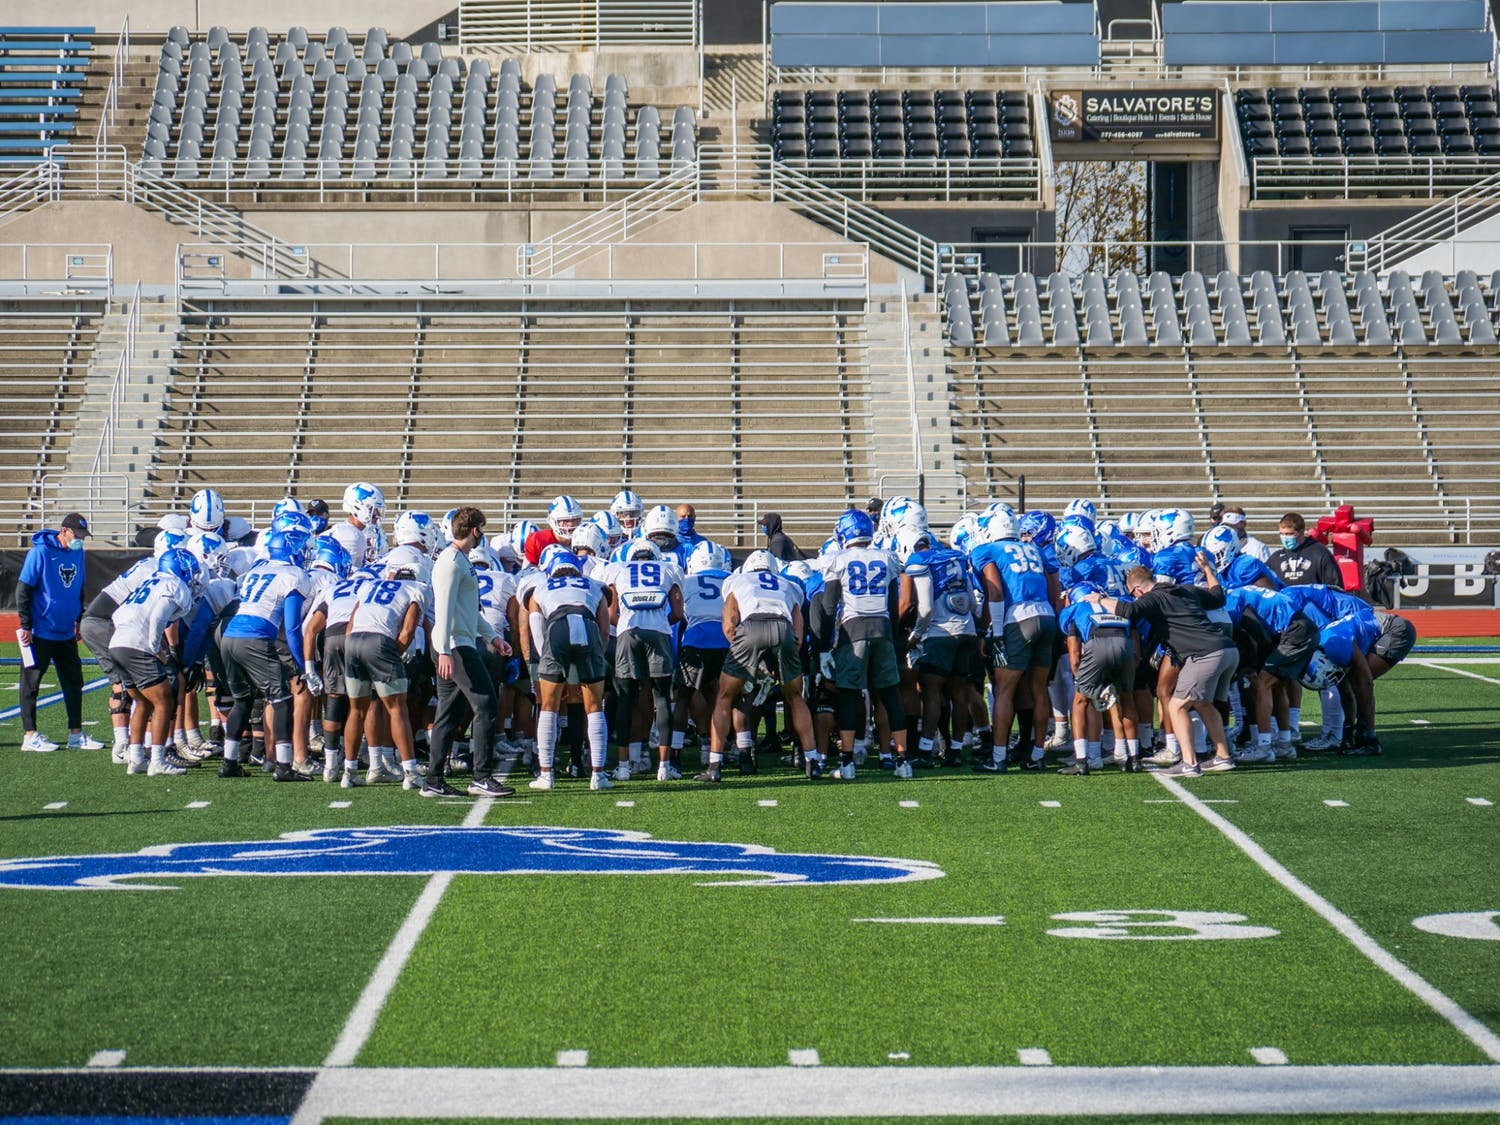 """""""The University at Buffalo Division of Athletics is committed to sustaining a culture of diversity and inclusion and strongly denounces racism in all forms,"""" UB Athletics said in a statement."""